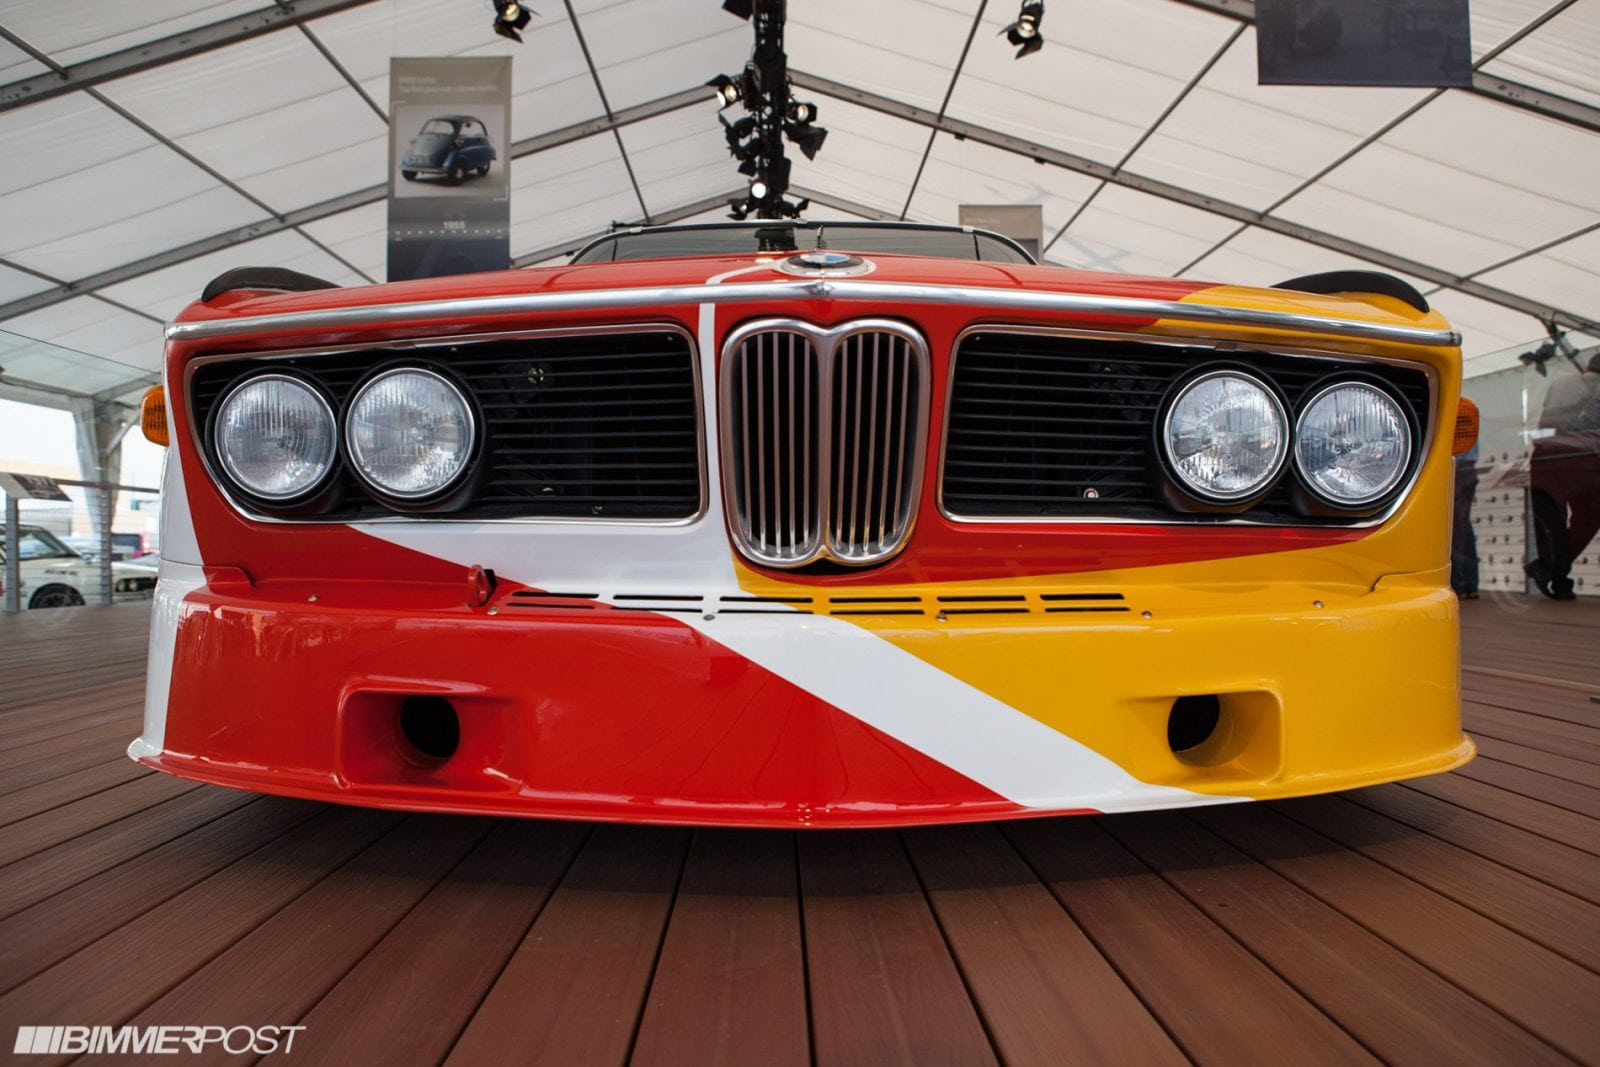 Экспозиция BMW в Pebble Beach, фото - Jason, Bimmerpost